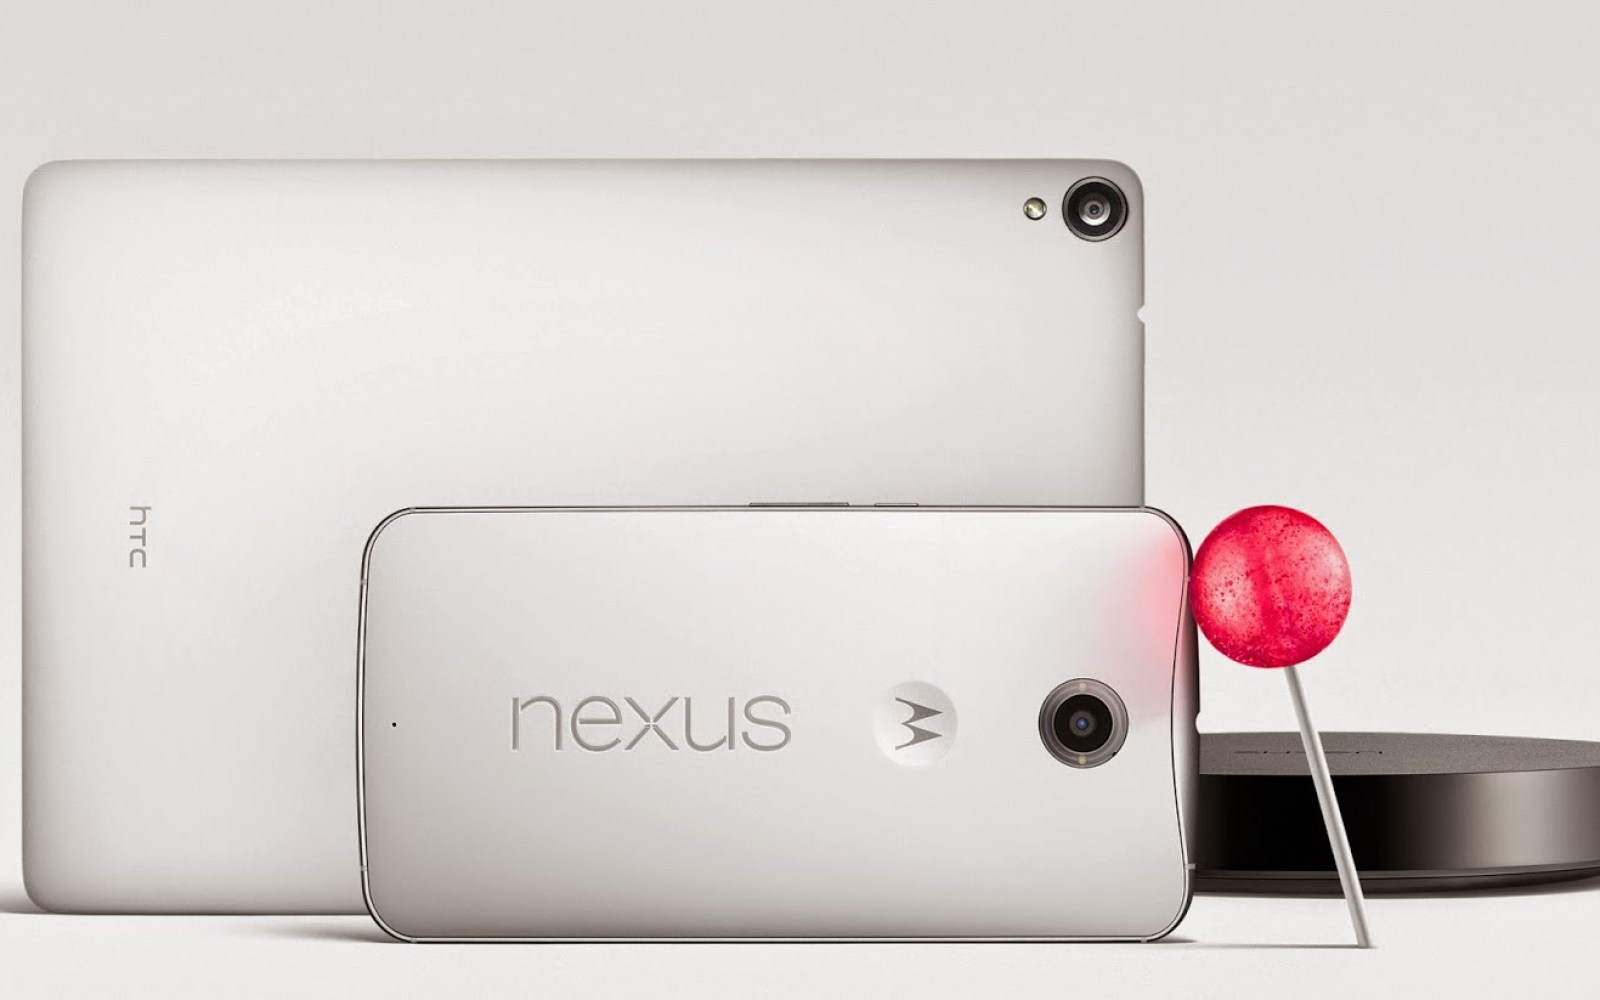 Google announces Nexus 9 tablet, Nexus 6 phone and Player TV/Gaming on the eve of Apple's iPad event